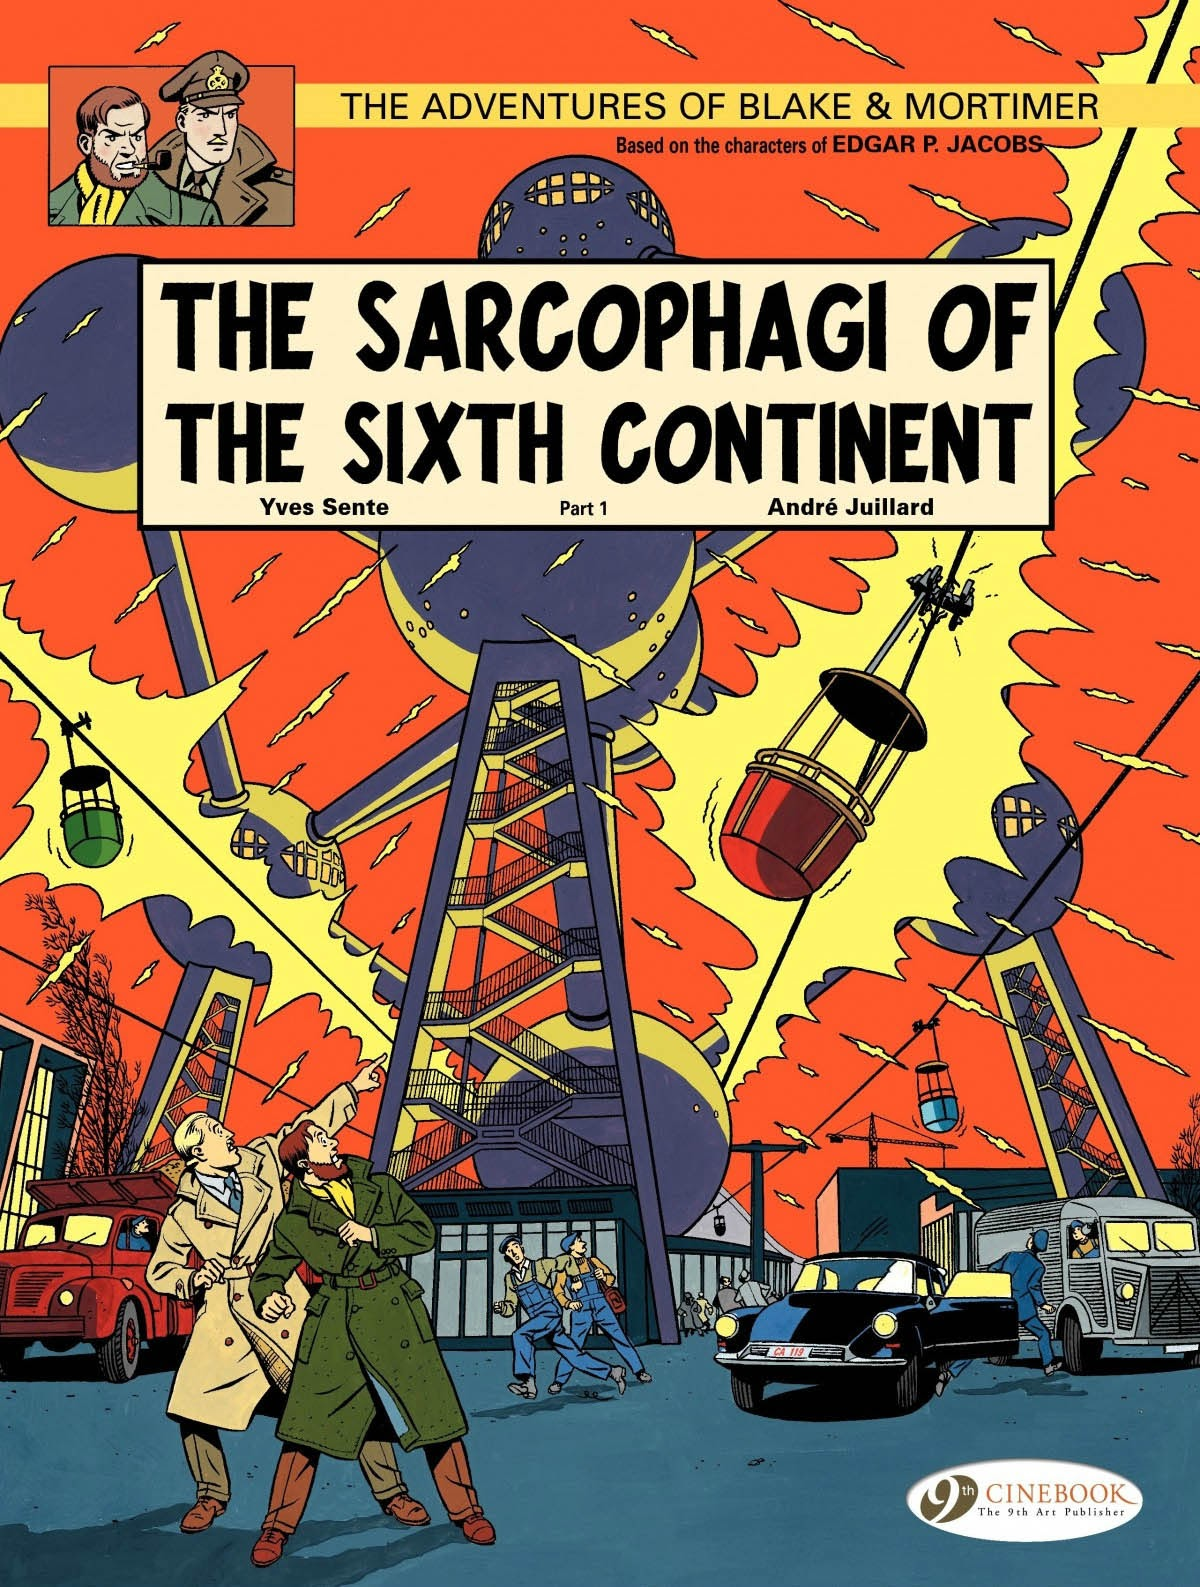 The Adventures of Blake & Mortimer 9 Page 1